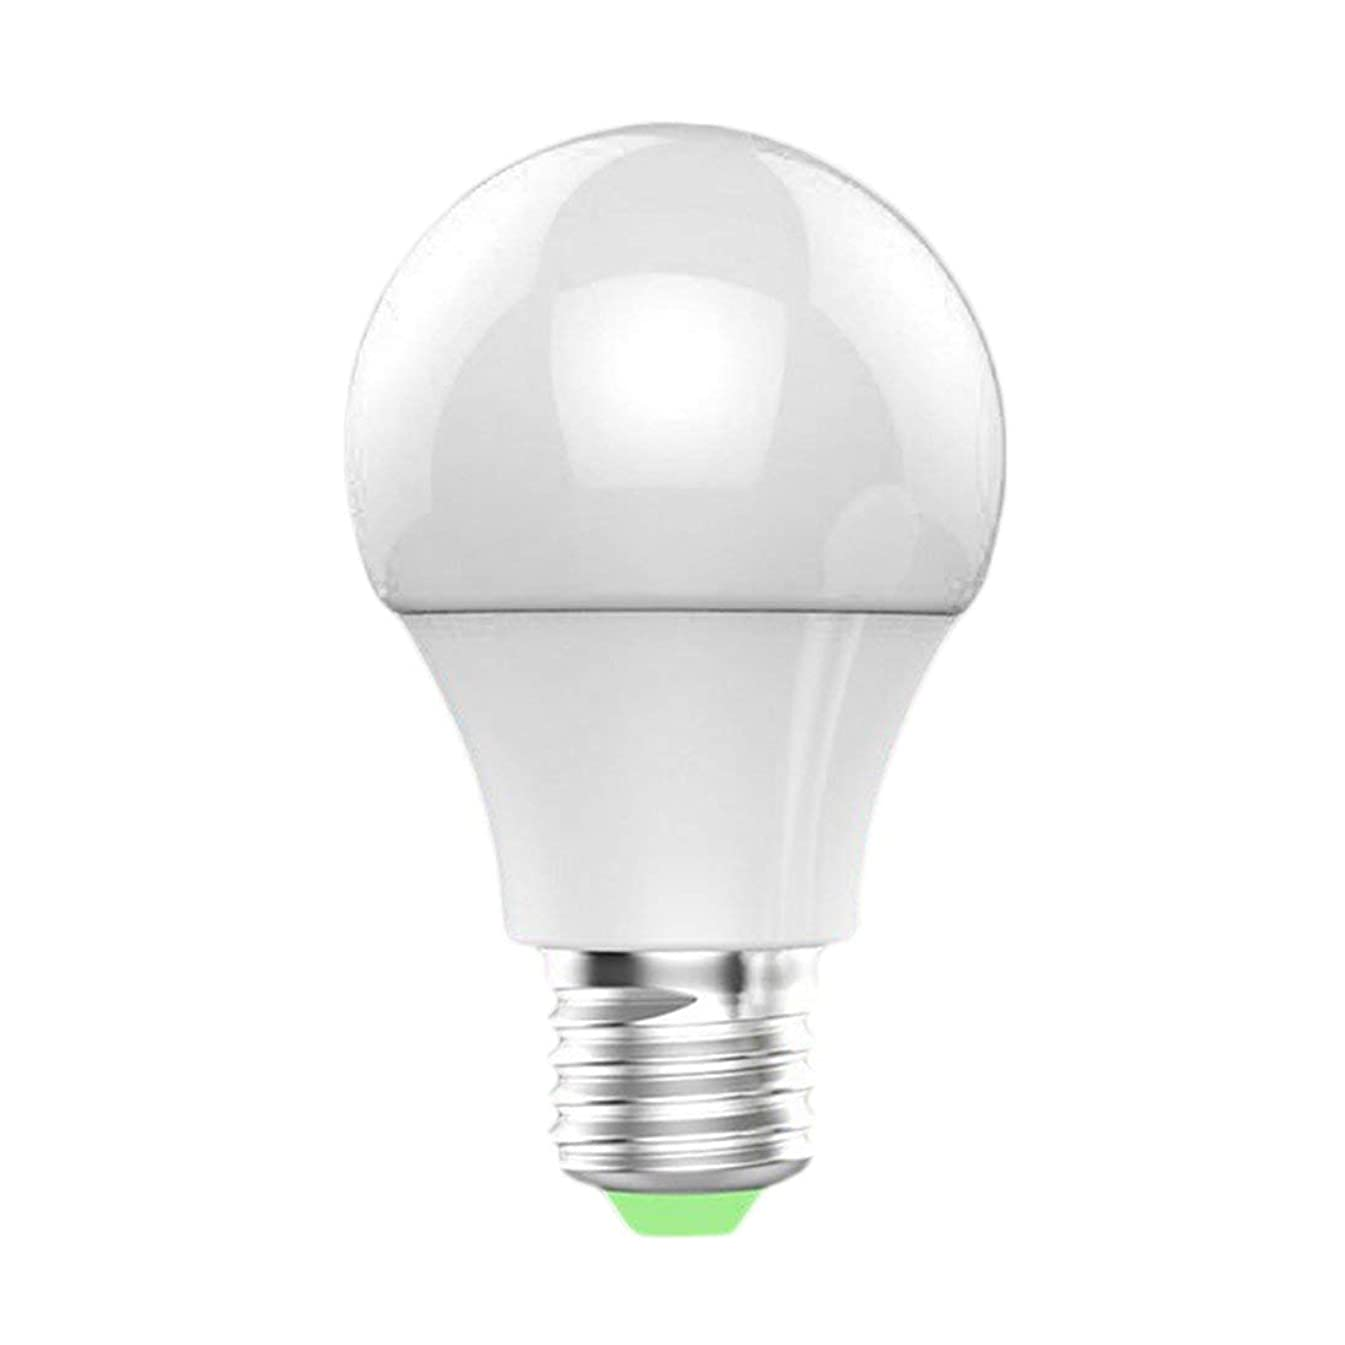 Baynne Mini Color Cell Phone App Remote Sensing Control Wi-Fi Smart LED Bulb Light Compatible with Alexa/Google Home